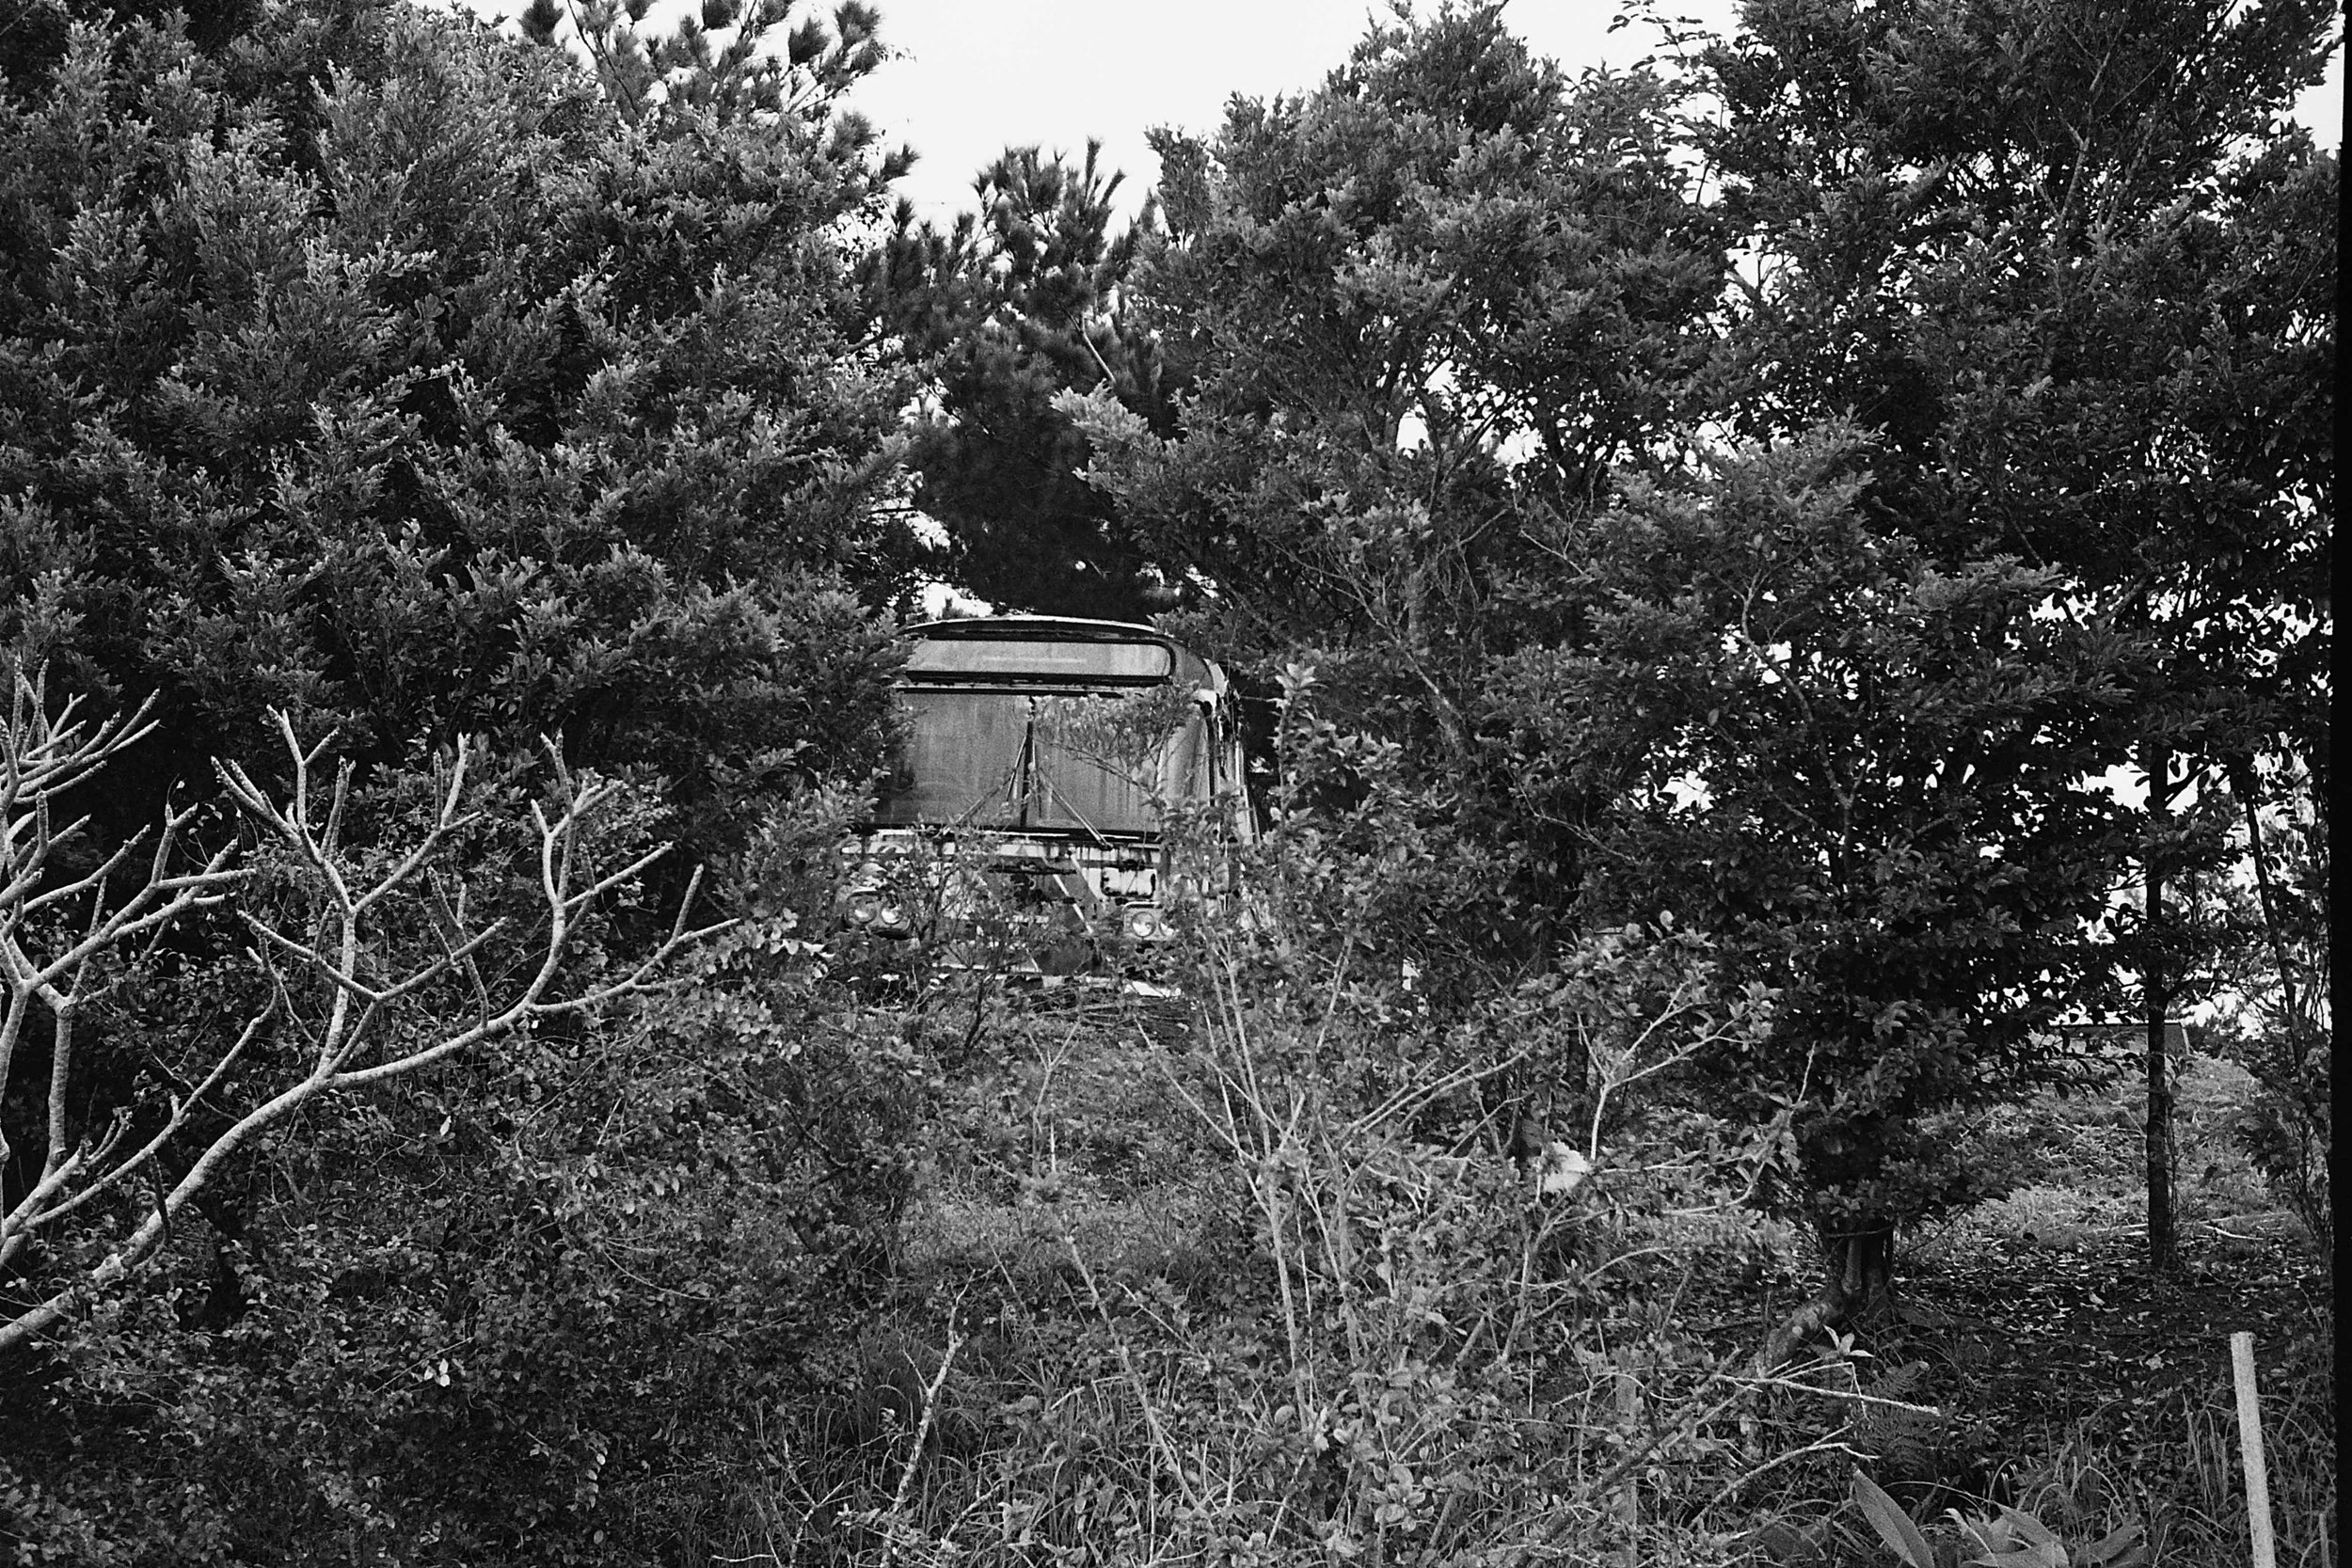 Leica M6 Summicron/35mm  Yes that's a bus peaking through the trees...